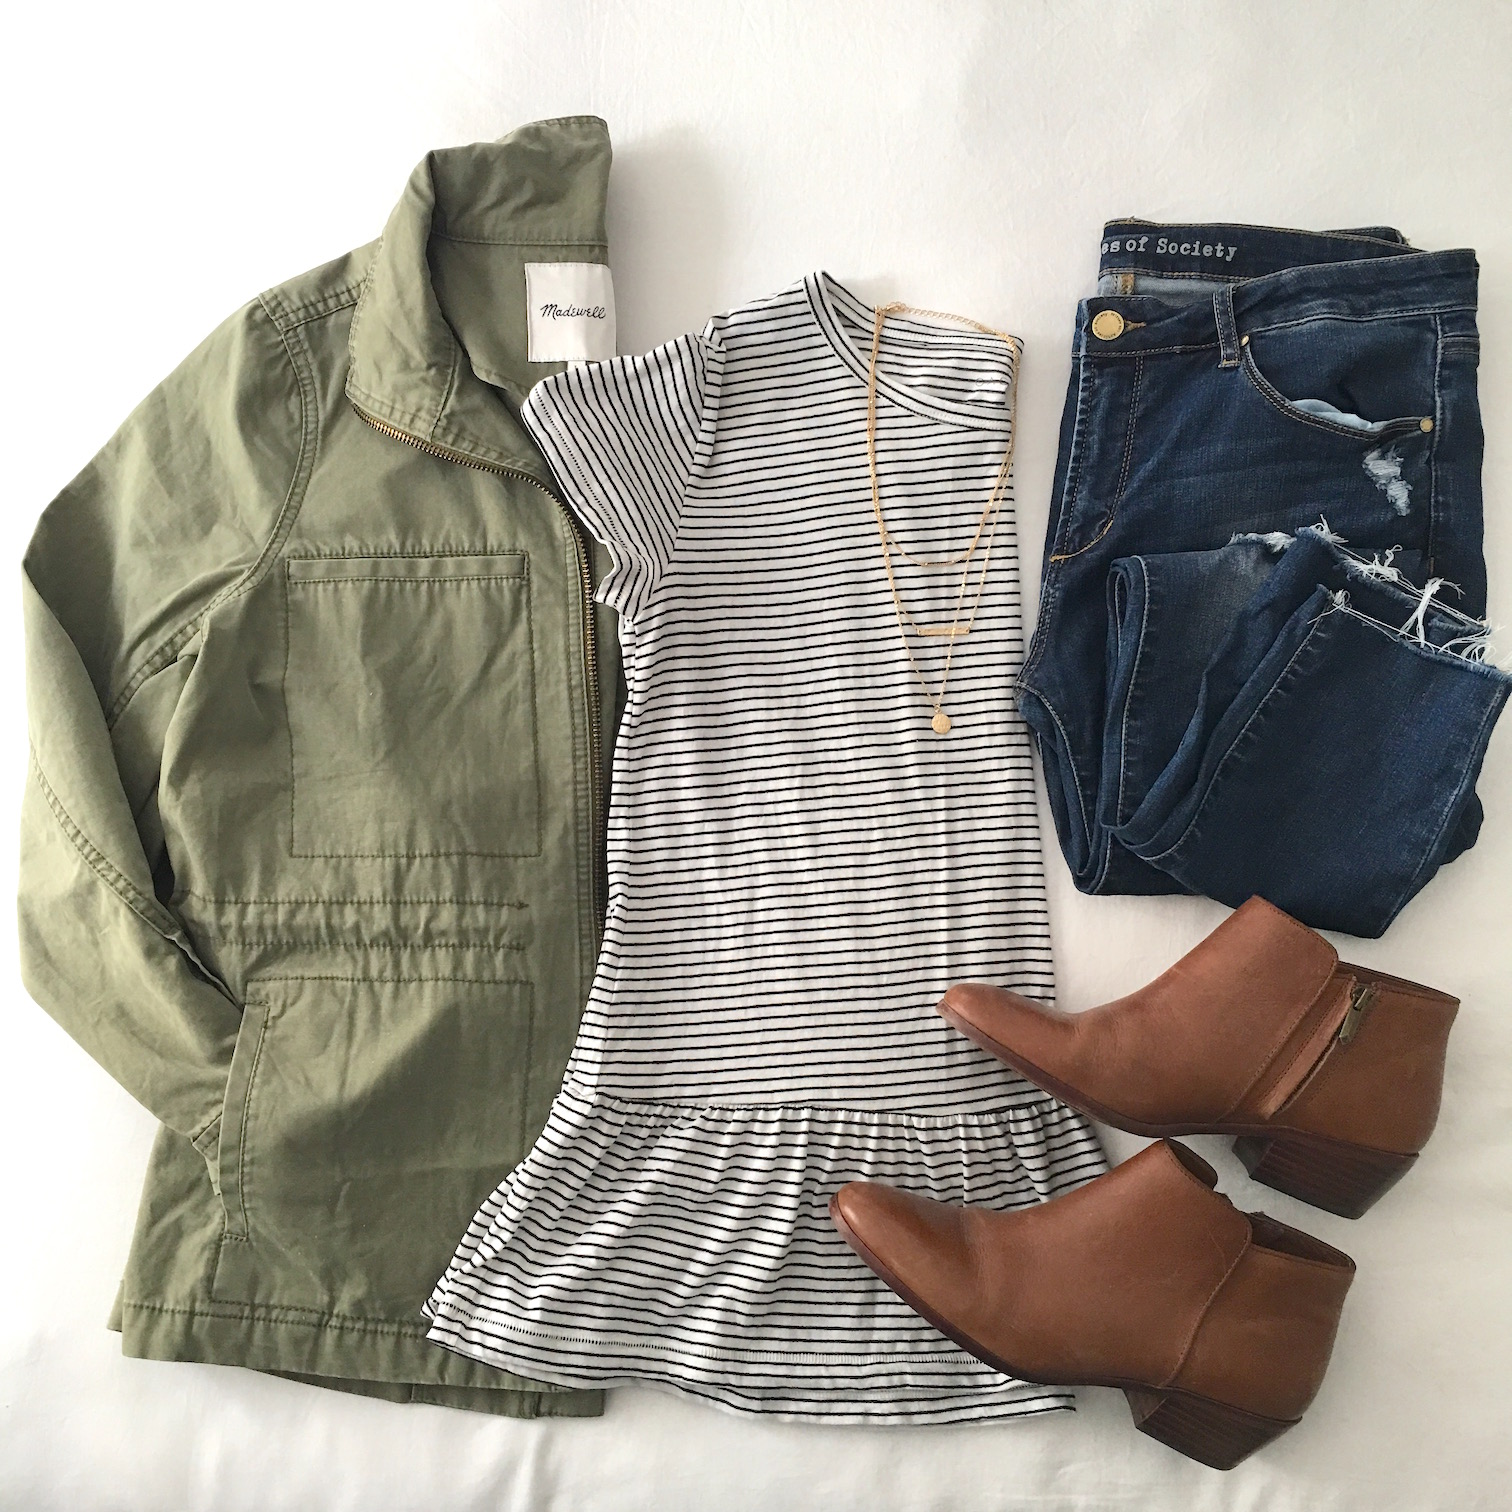 Outfit Flatlay - military inspired